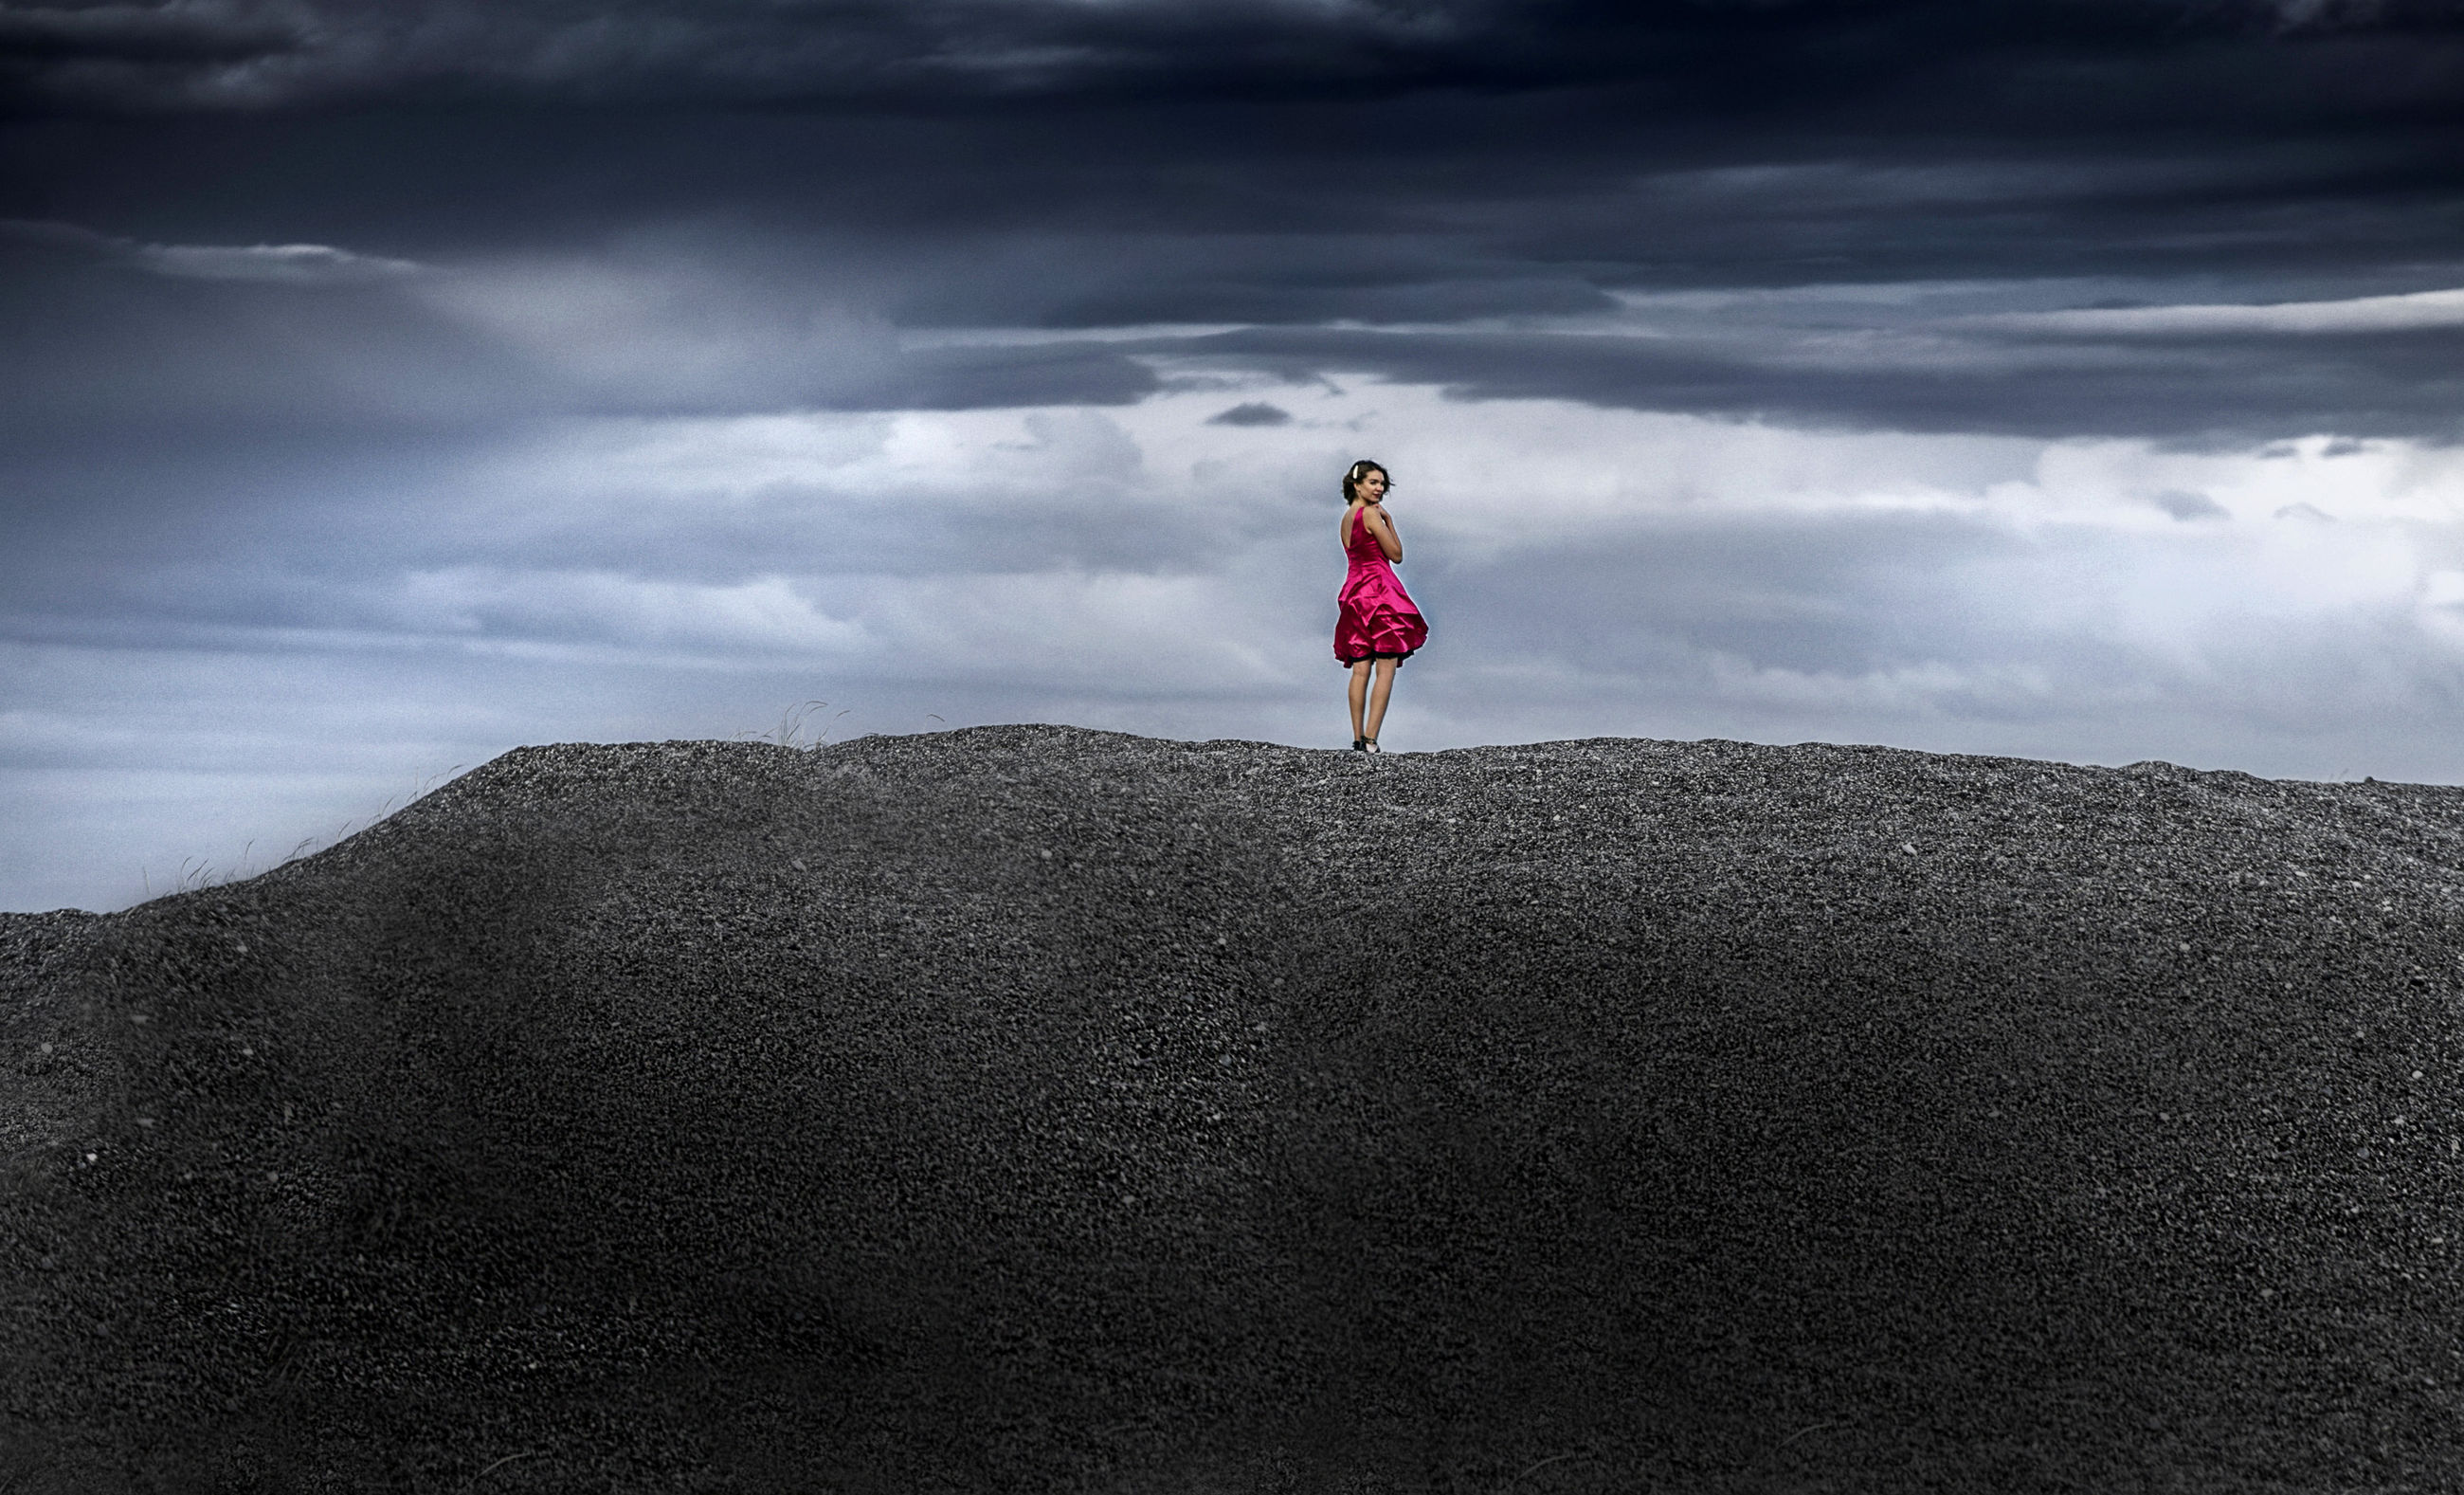 cloud, one person, sky, horizon, full length, adult, nature, sea, environment, land, landscape, standing, women, mountain, beauty in nature, leisure activity, sand, sports, overcast, lifestyles, outdoors, dramatic sky, storm, young adult, solitude, darkness, day, scenics - nature, rear view, storm cloud, exercising, cloudscape, activity, clothing, rock